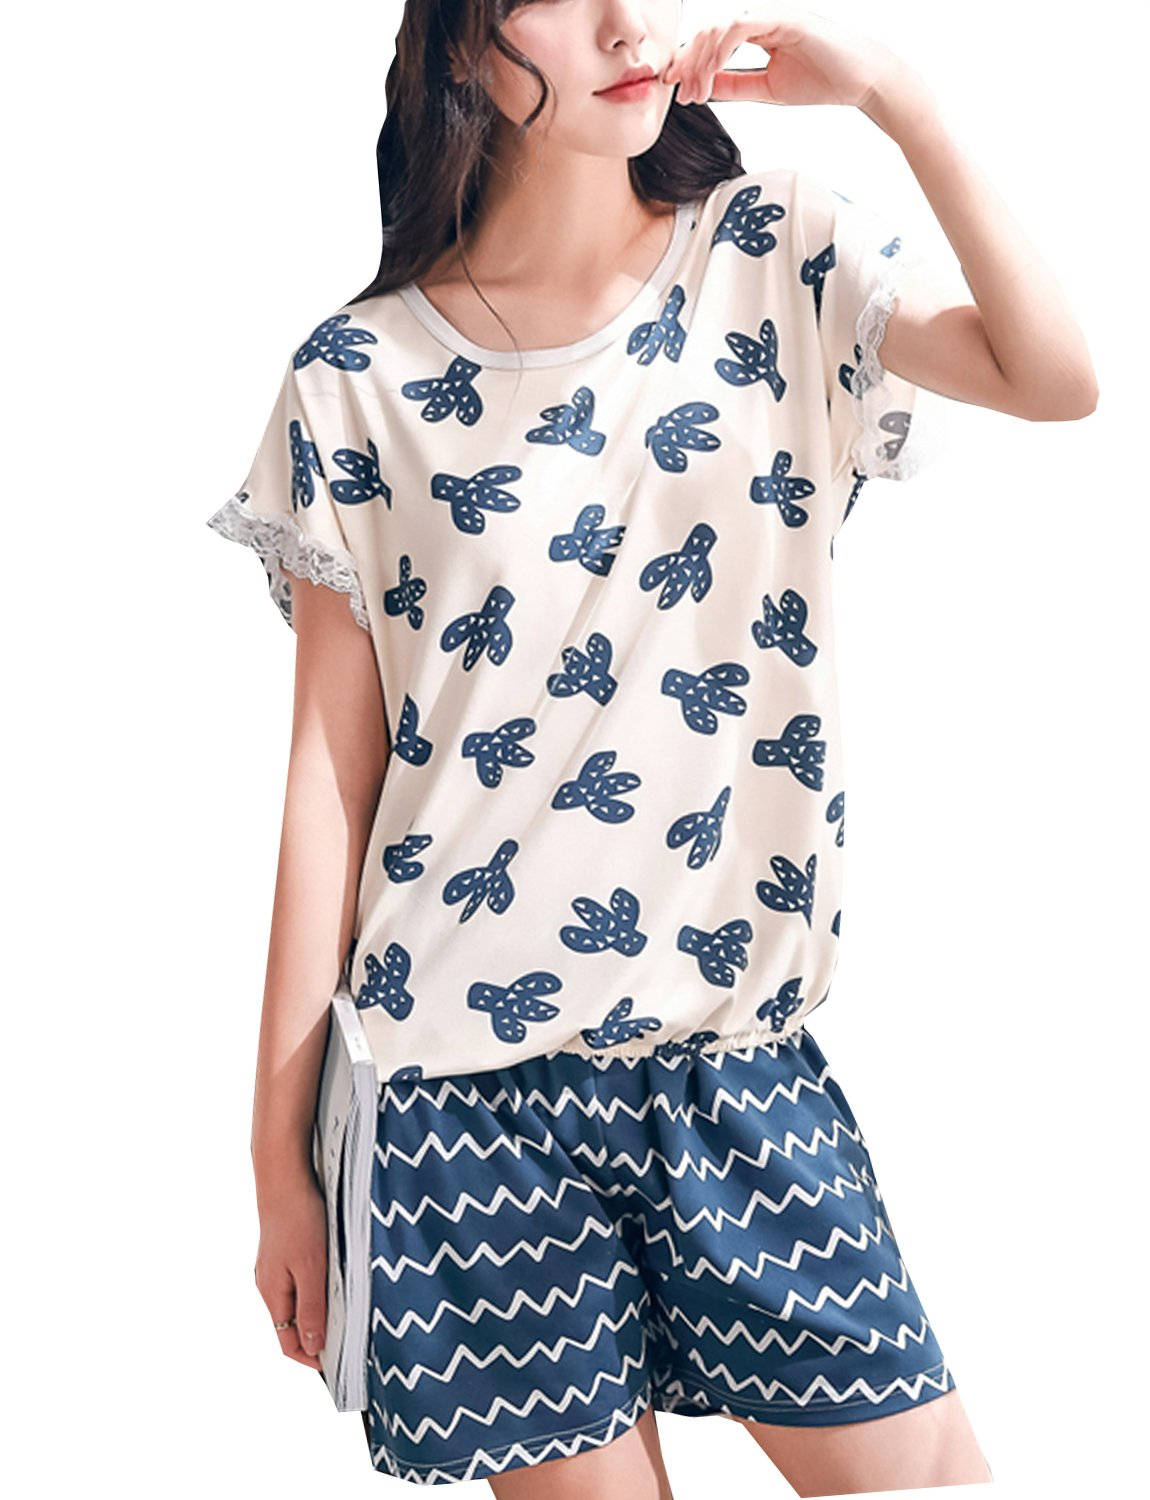 LLP Teen Girls Lovely Cartoon Summer Pajama 2 Pieces Casual Sleepwear (8-16 Years Old)